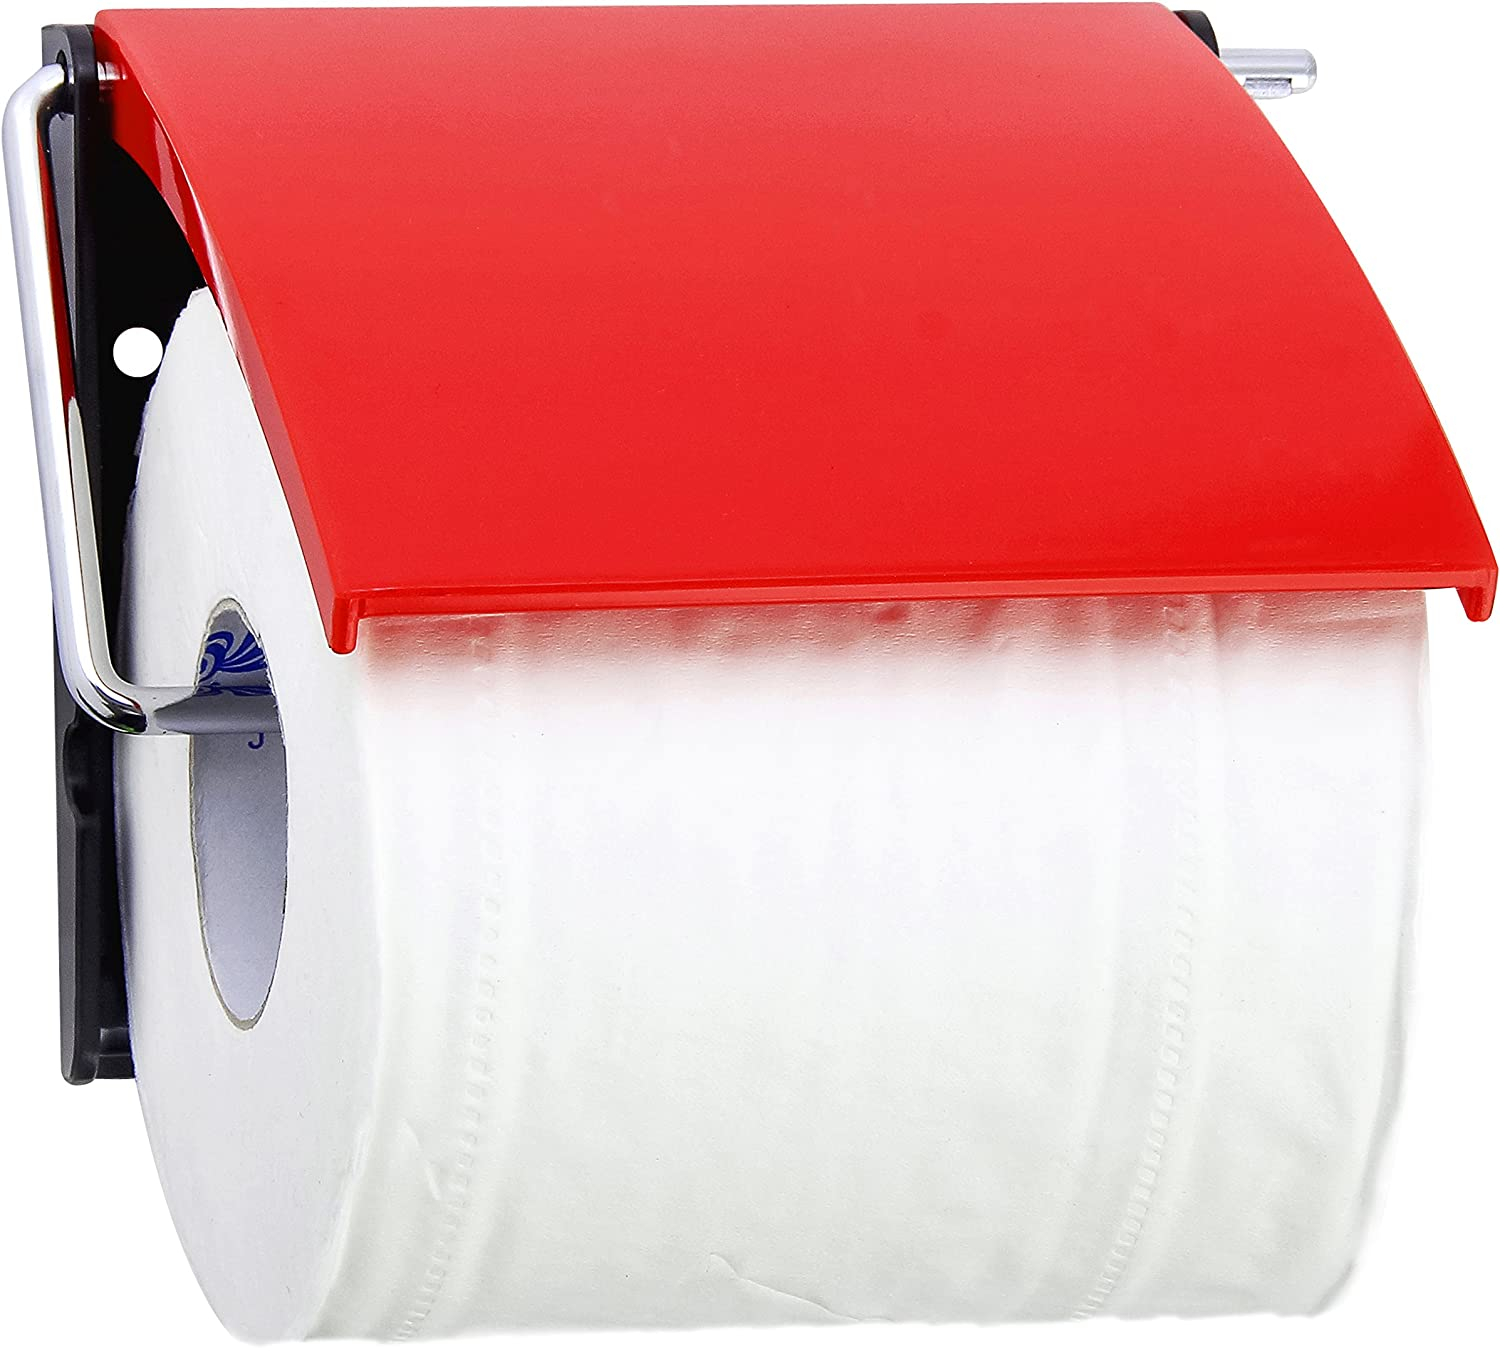 Dealing full price reduction MSV Toilet roll Holder Made of polystyrene 15 x 30 in 20 Max 66% OFF red